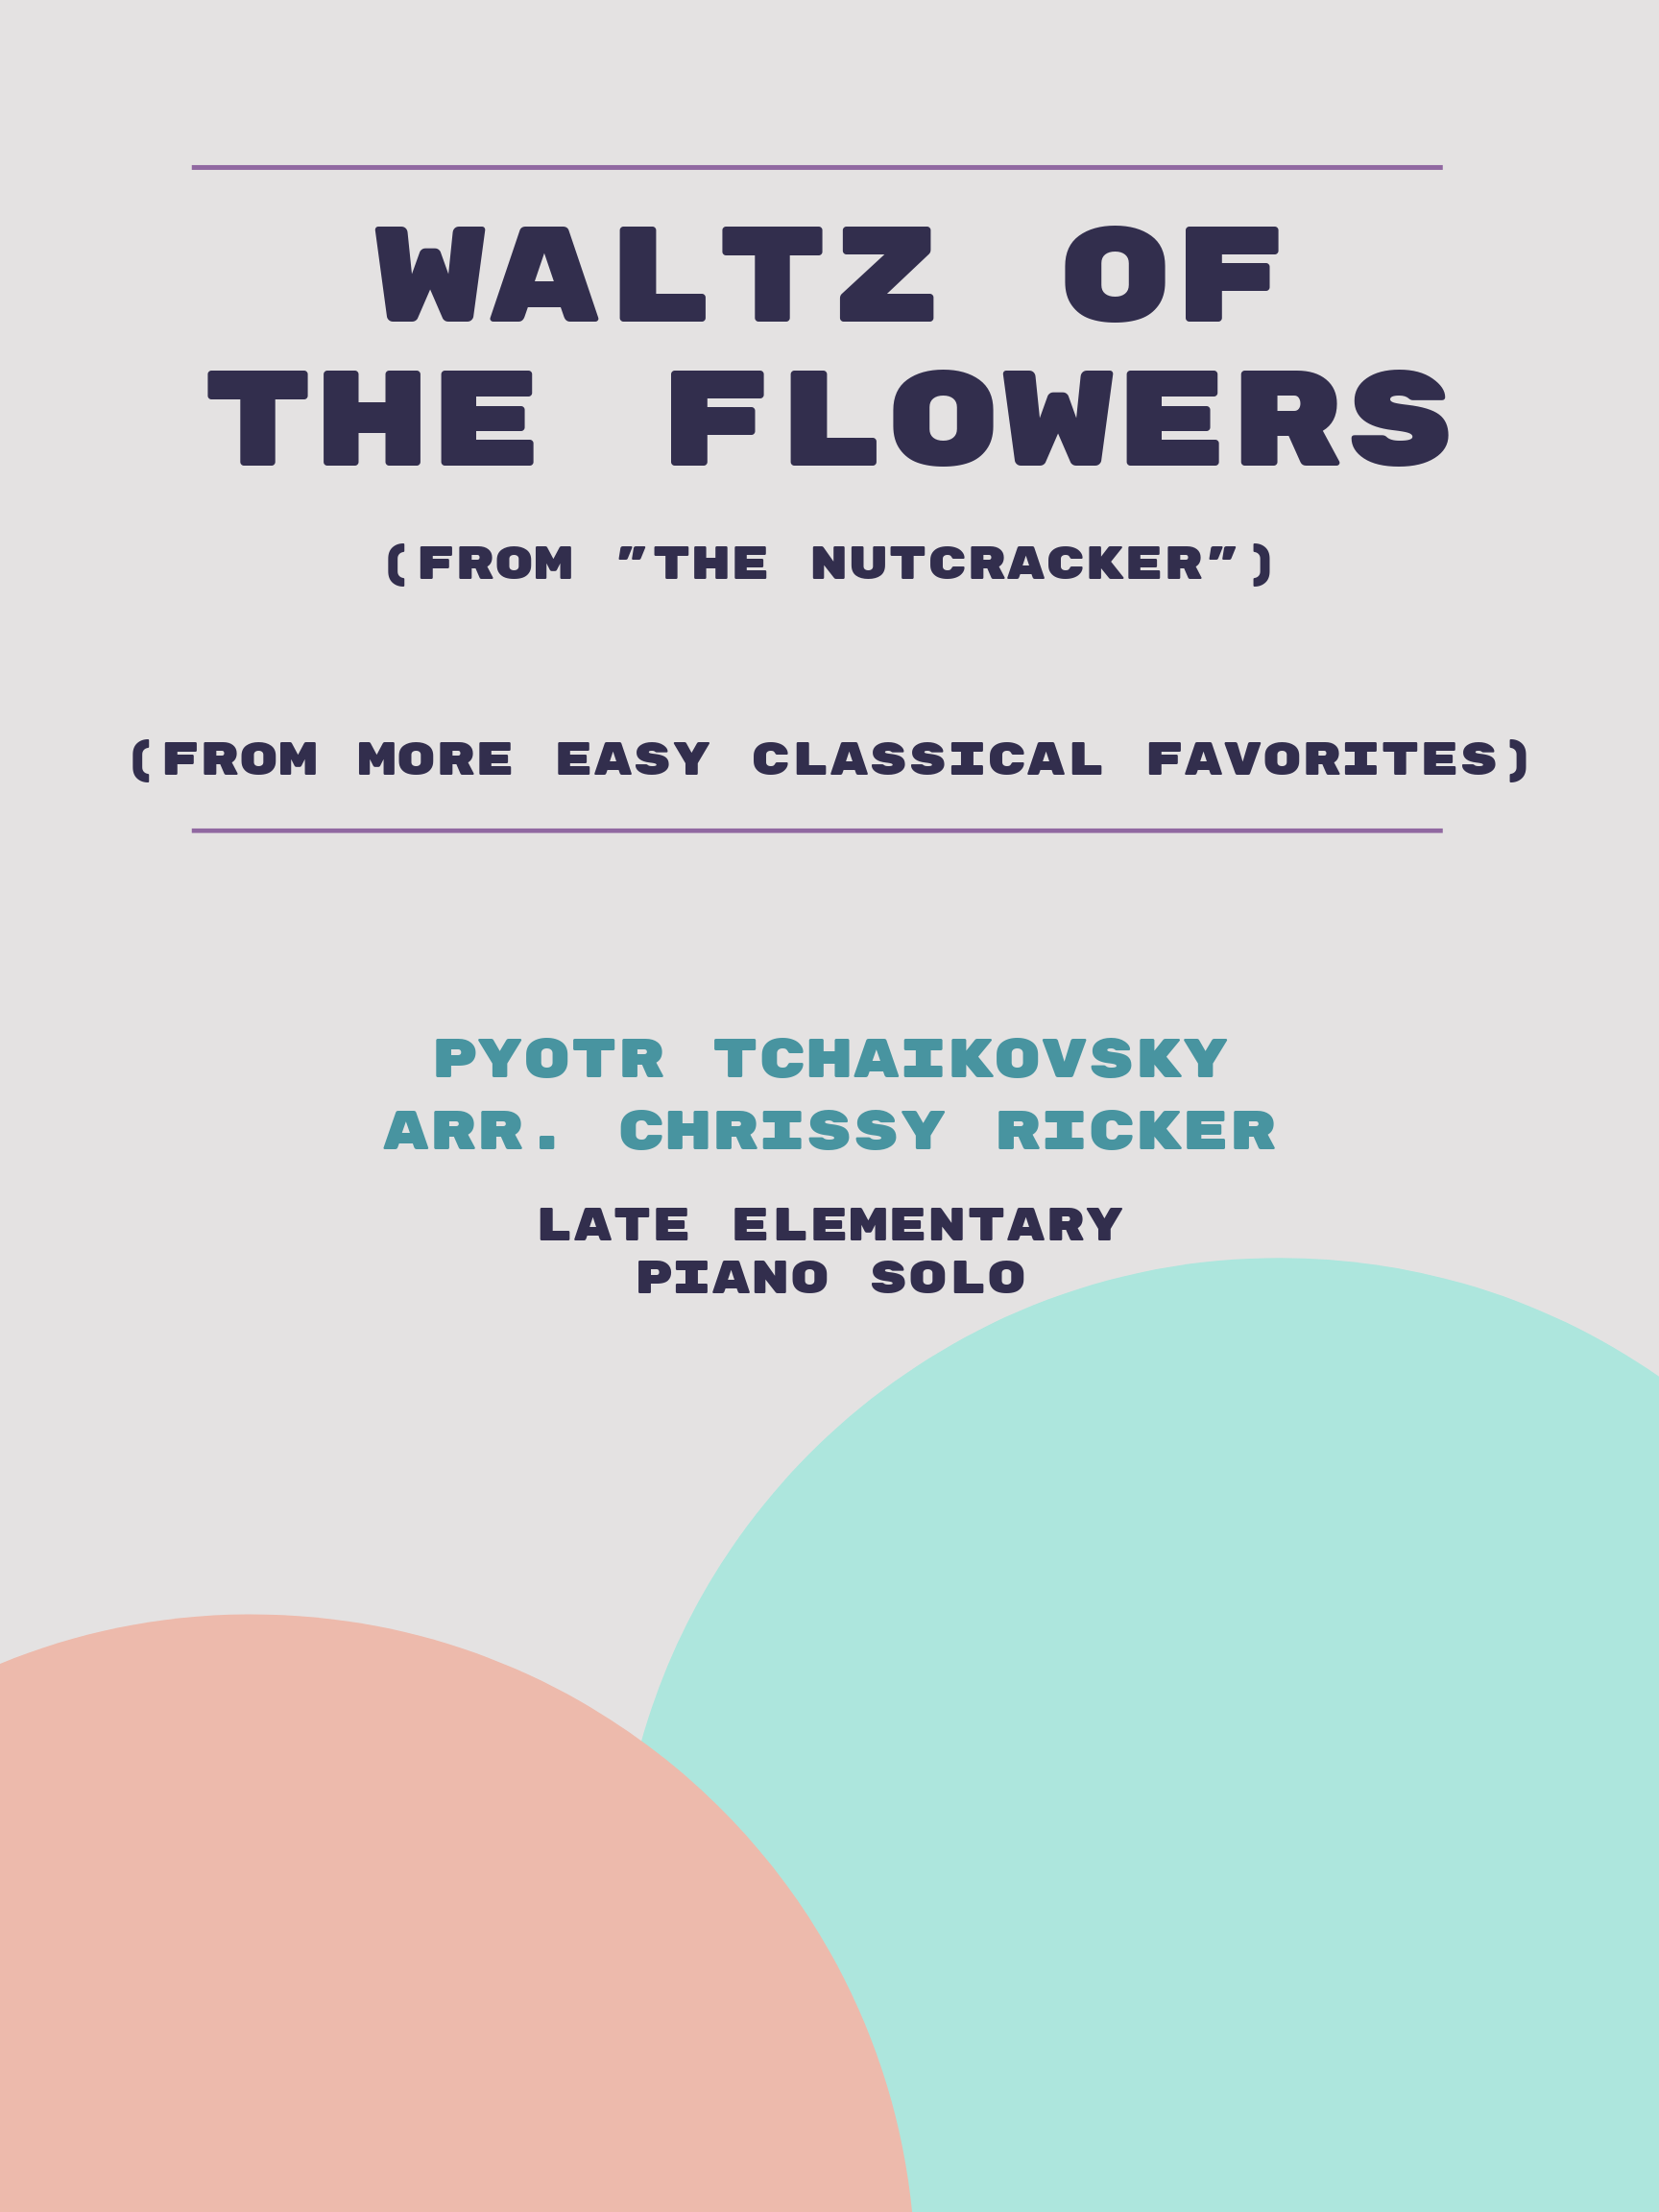 Waltz of the Flowers by Pyotr Tchaikovsky